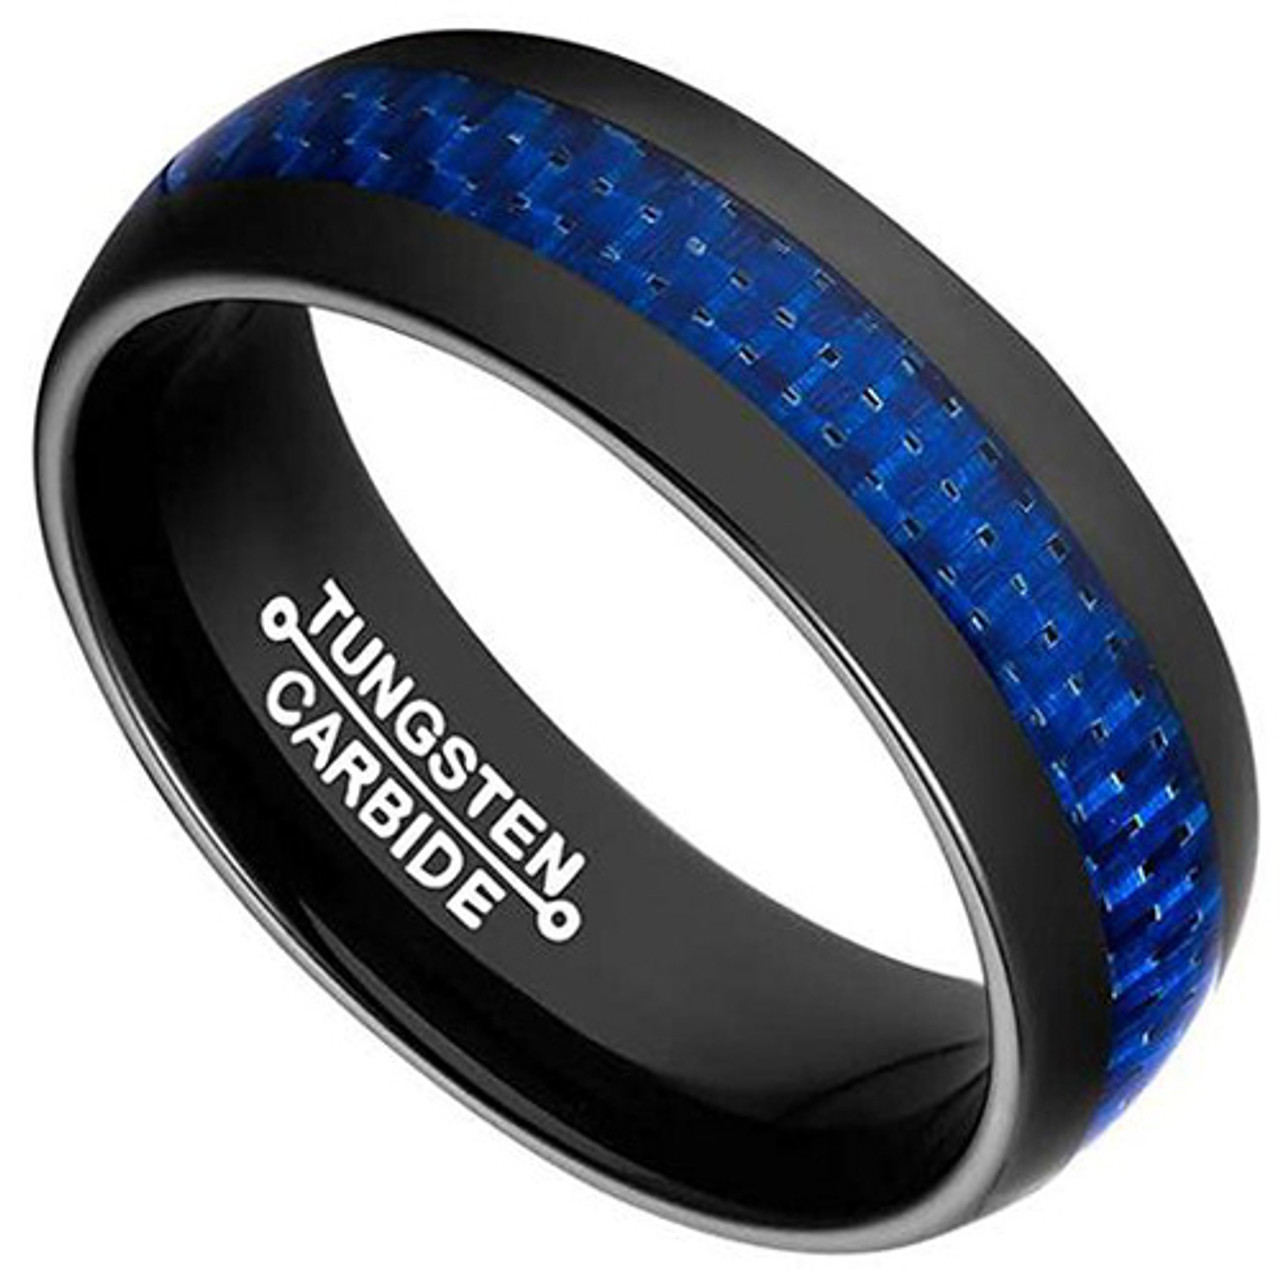 8mm Tungsten Carbide Gold Plated with Black /& Blue Carbon Fiber Inlay Wedding Band Ring for Men Or Ladies